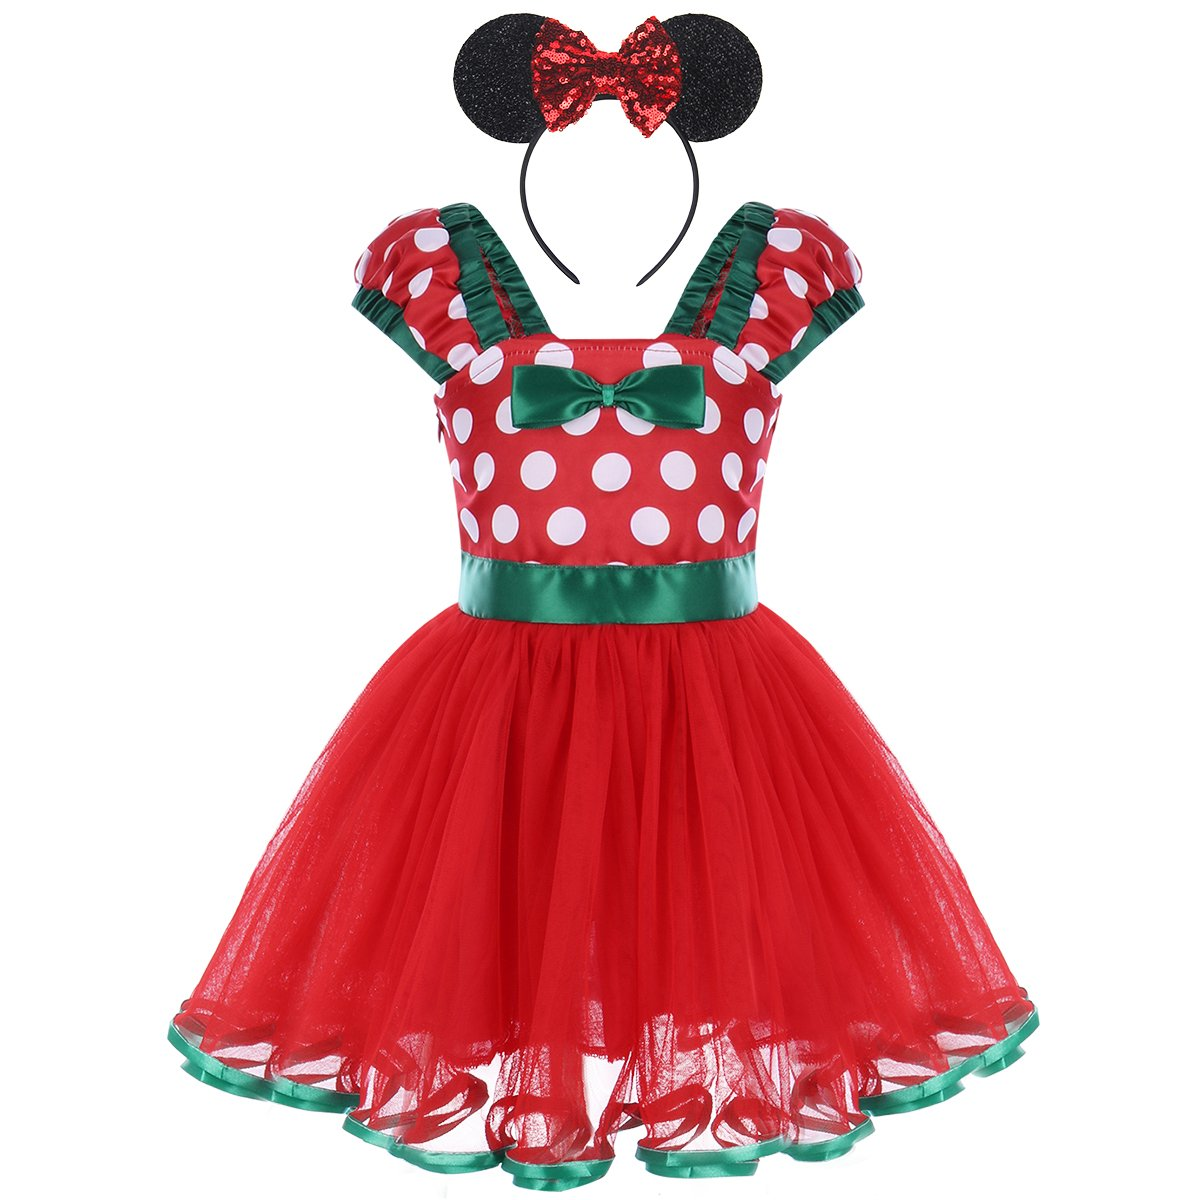 Baby Girls Minnie Polka Dots Princess Ballet Tutu Dress Birthday Party Pageant Dress up Costume Outfits with Headband Y# Red+Sequined Headband 4-5 Years